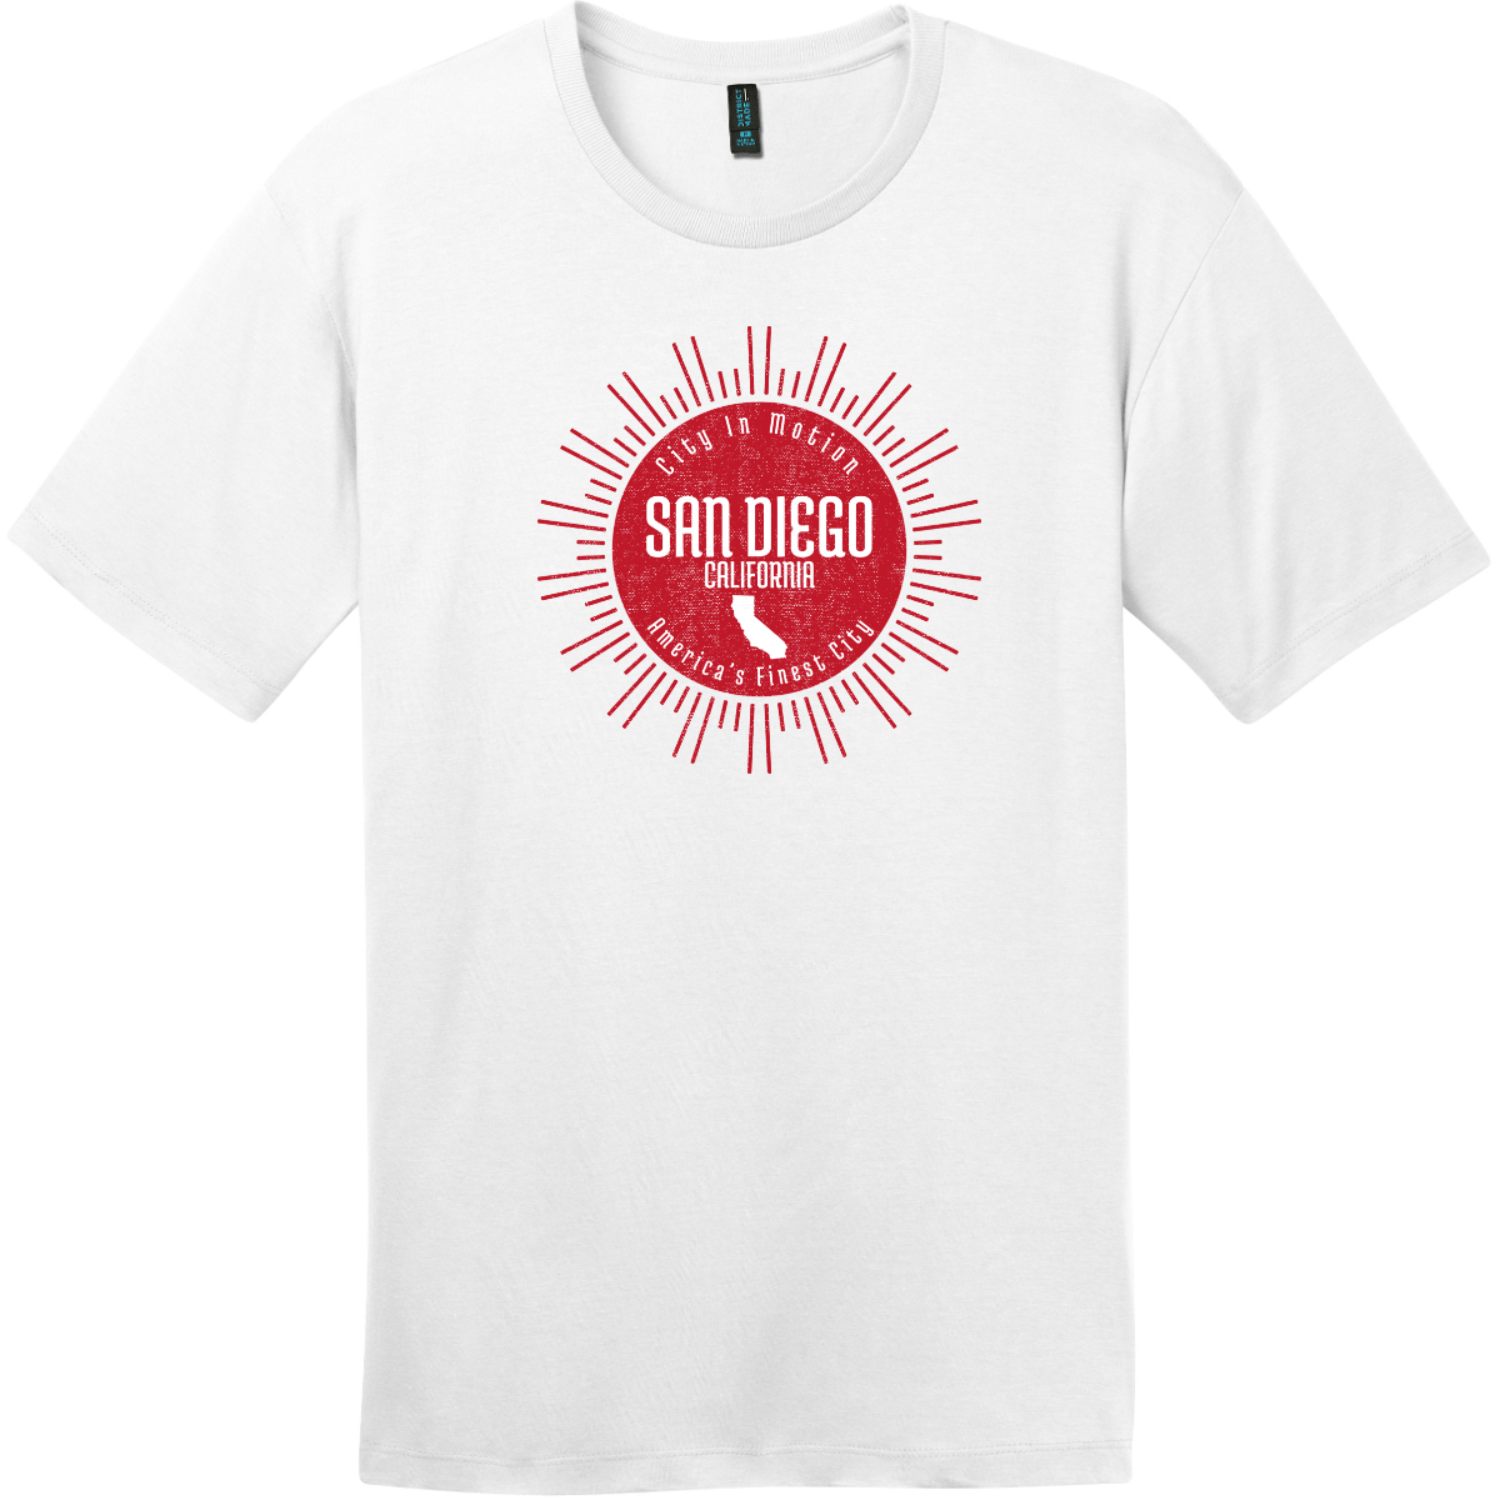 San Diego America's Finest City Sunshine T-Shirt Bright White District Perfect Weight Tee DT104